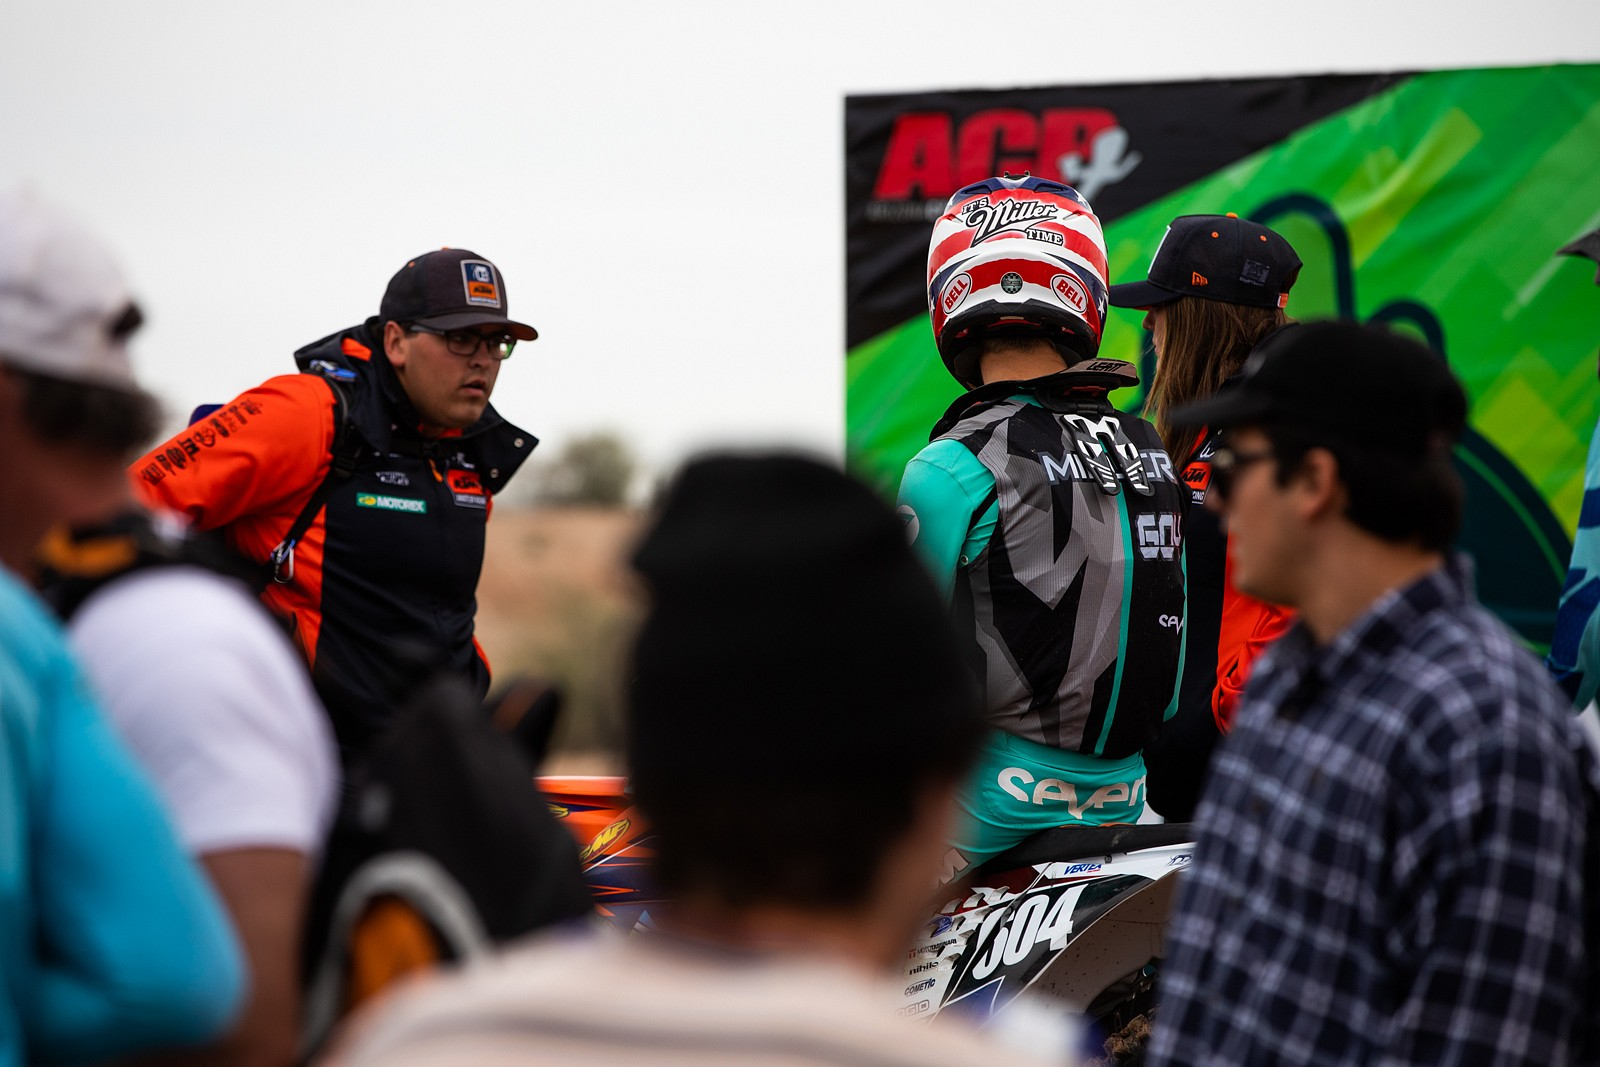 Max Miller - AZ Open of Motocross, Part 2 - Motocross Pictures - Vital MX